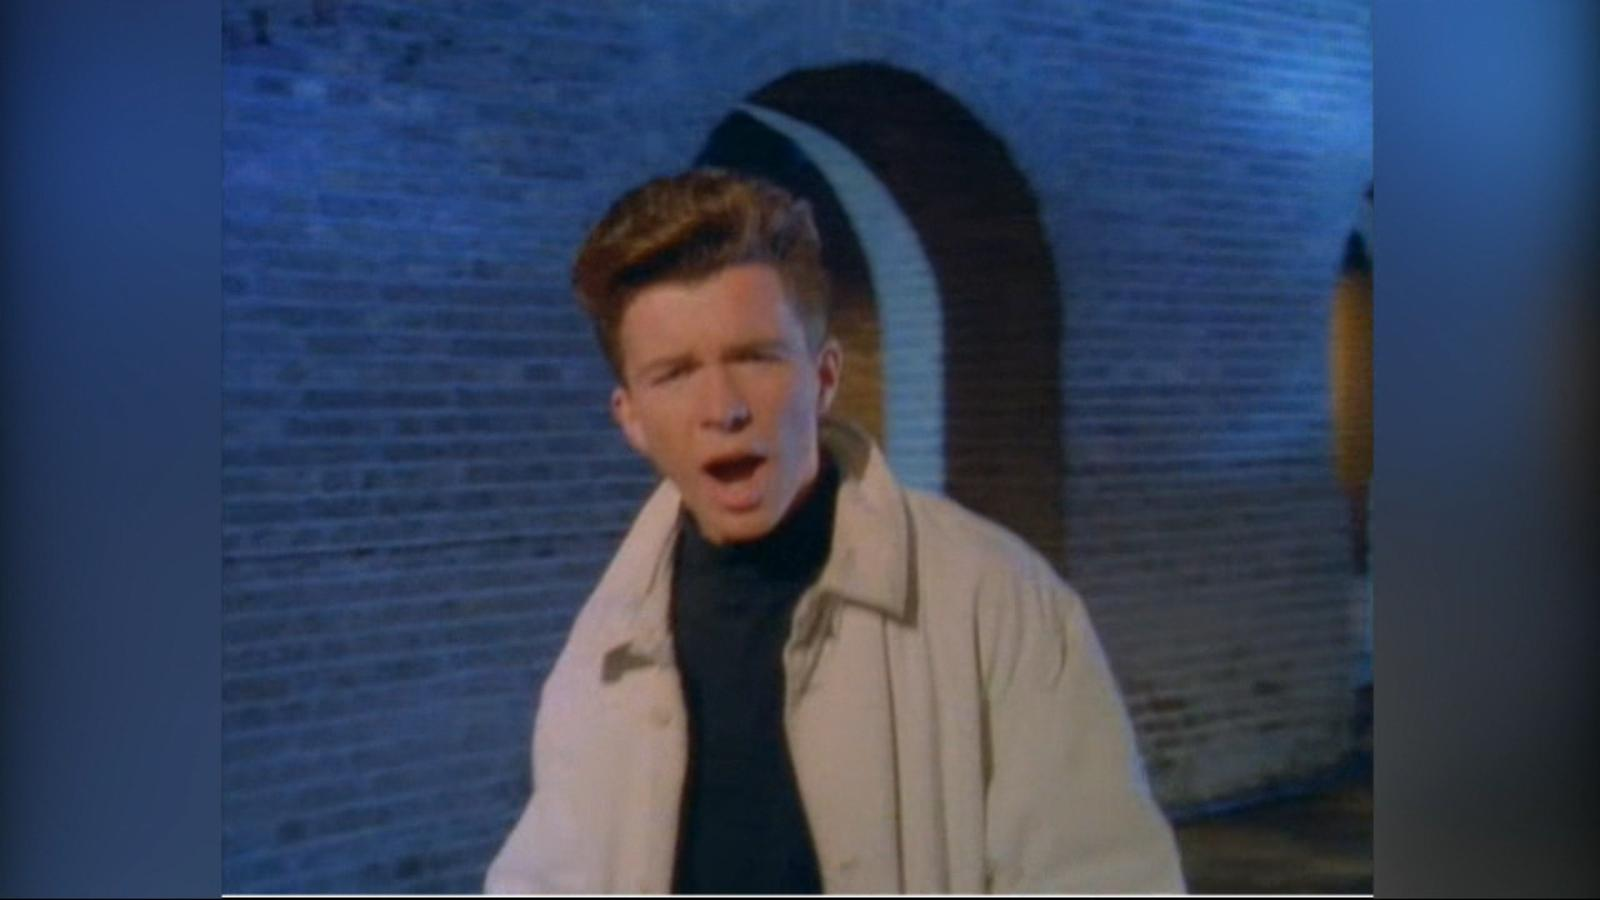 rick astley videos at abc news video archive at abcnewscom